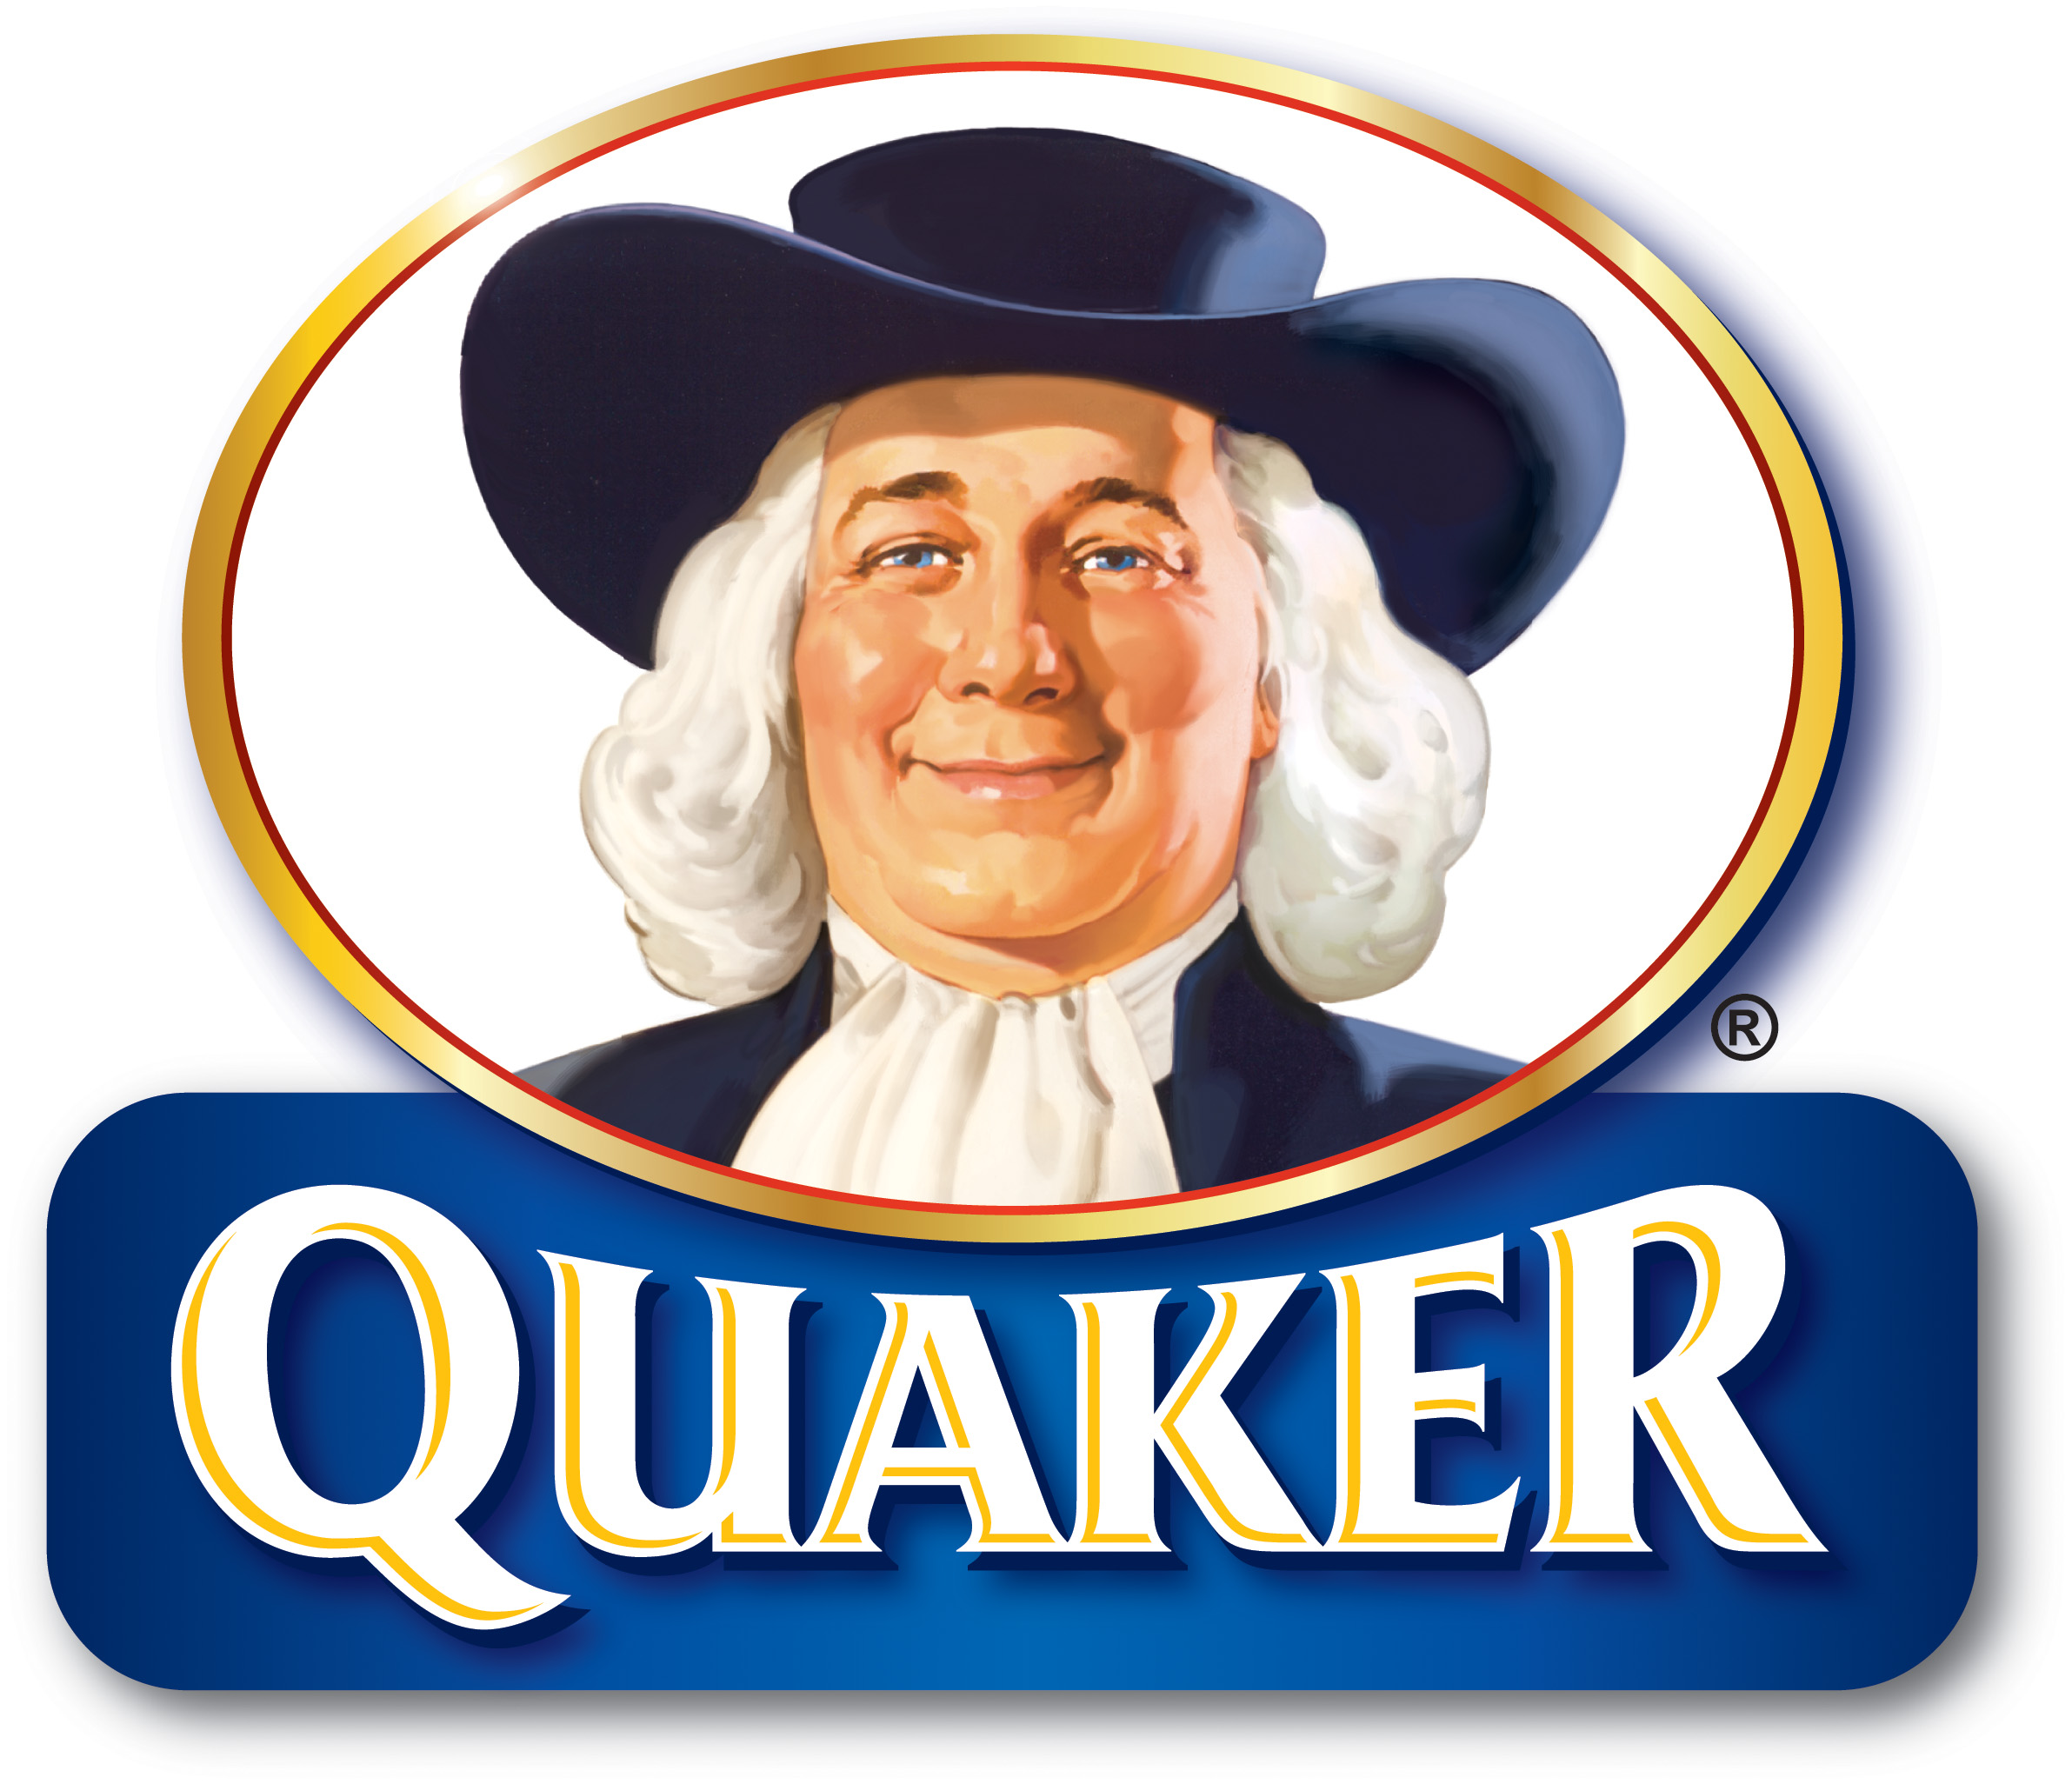 http://images.usa-4u.de/Bilder/Shop_Fotos/Quaker/header/quaker_logo.JPG